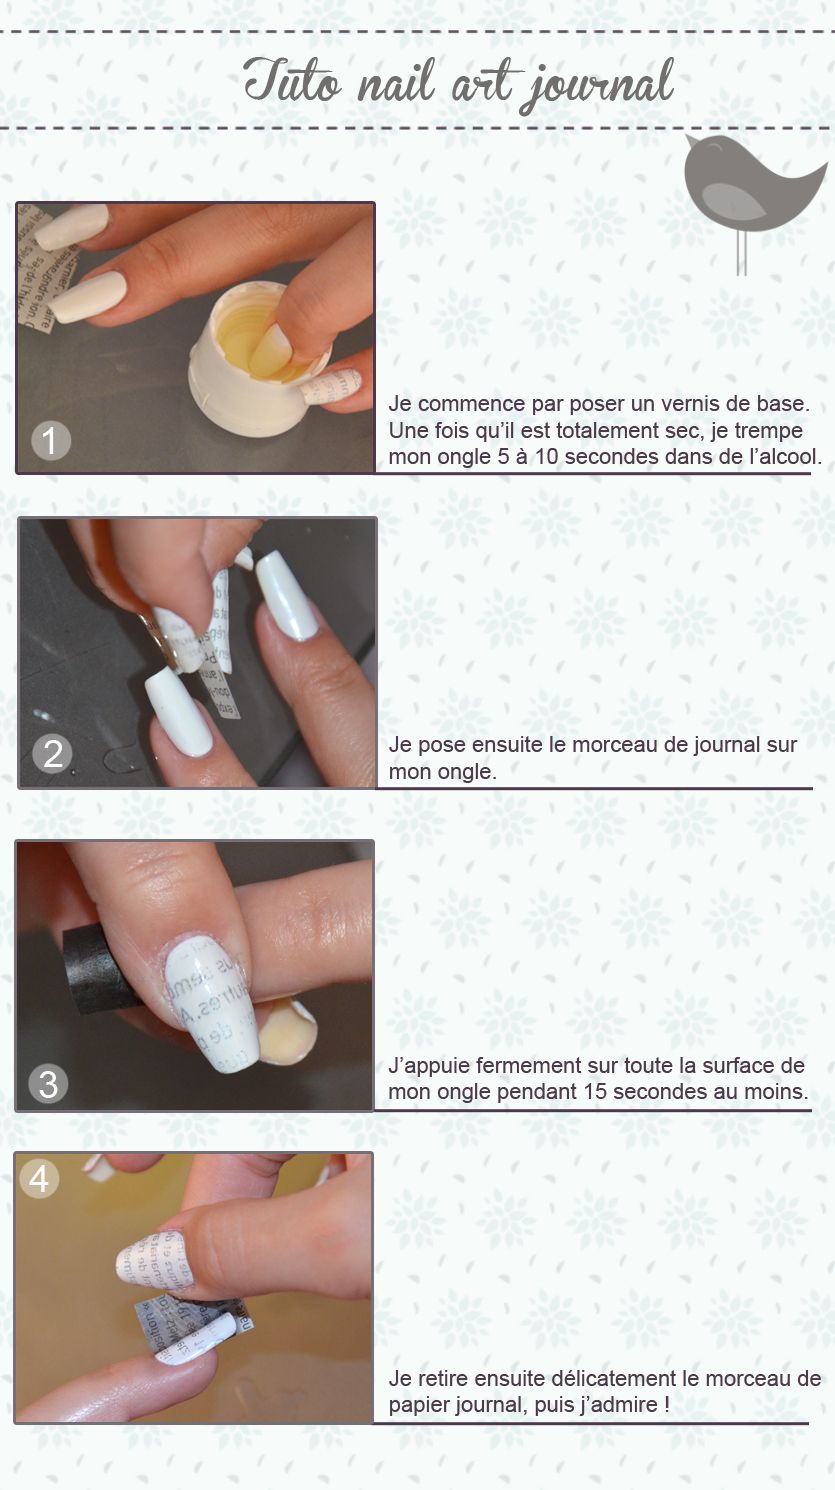 tuto nail art journal | Nails To-Do | Pinterest | Ongles, Makeup and ...